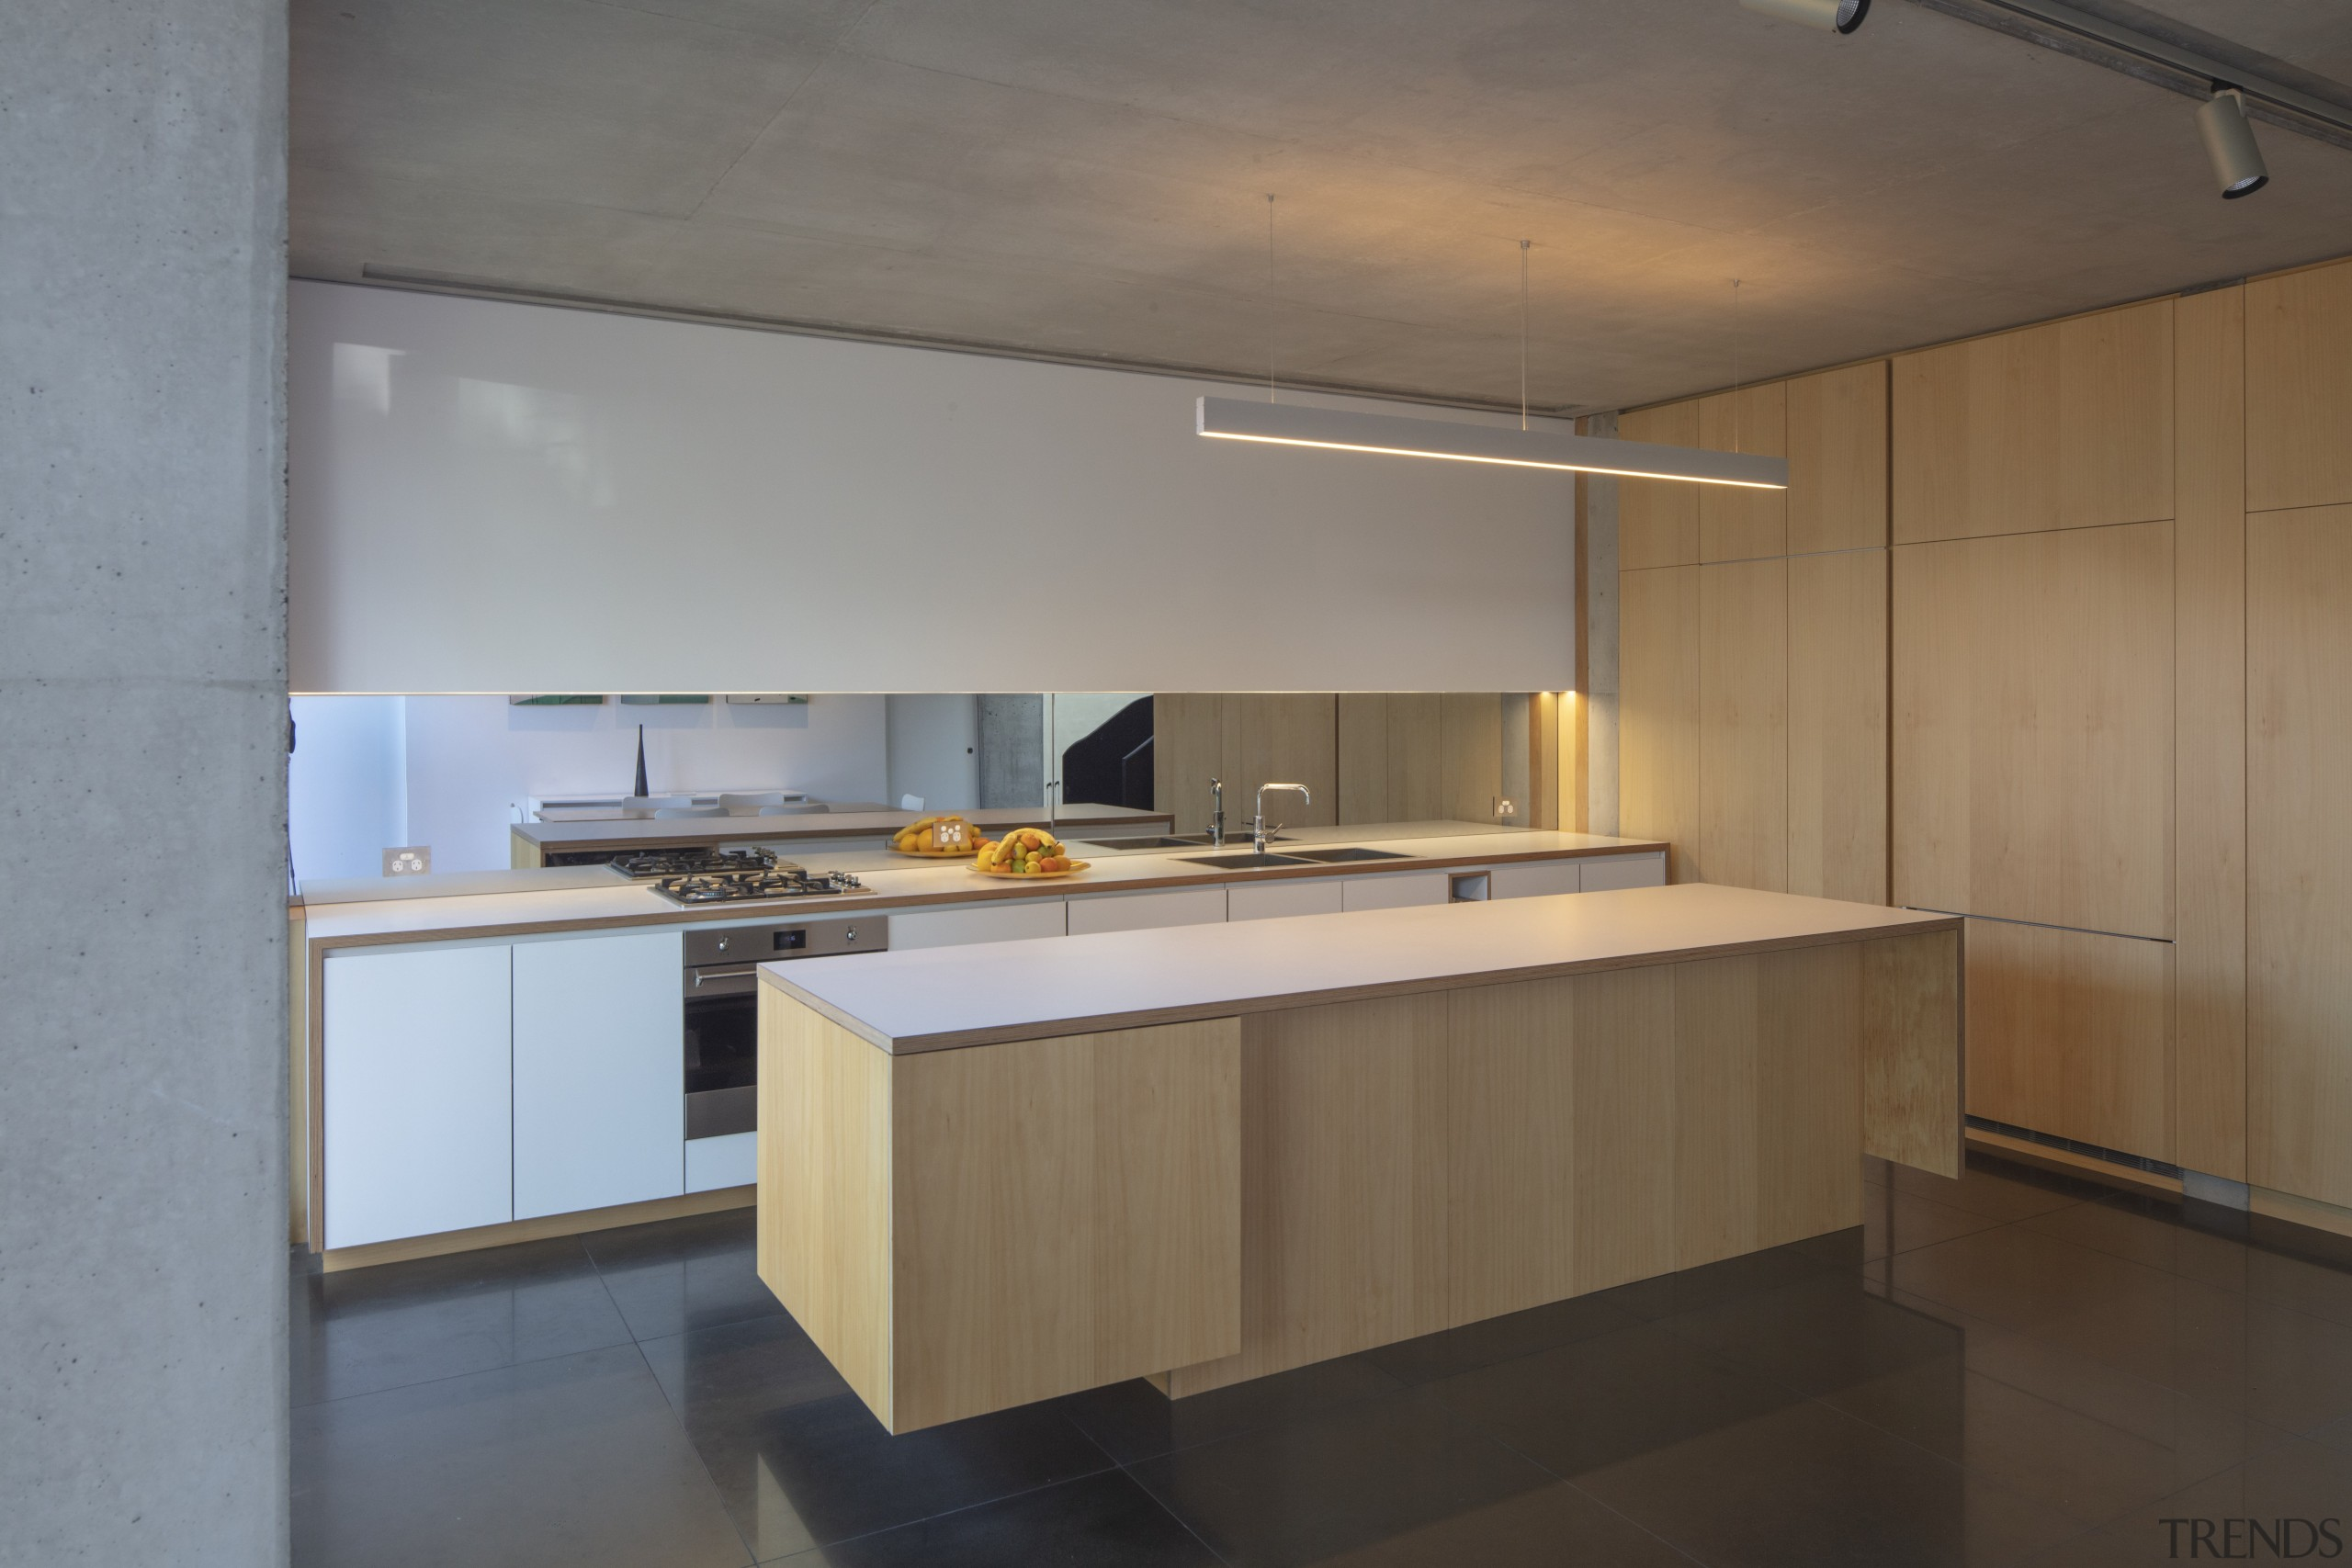 The exposed timber edging on the front and architecture, building, cabinetry, ceiling, countertop, floor, flooring, furniture, home, house, interior design, kitchen, kitchen stove, loft, material property, property, real estate, room, gray, brown